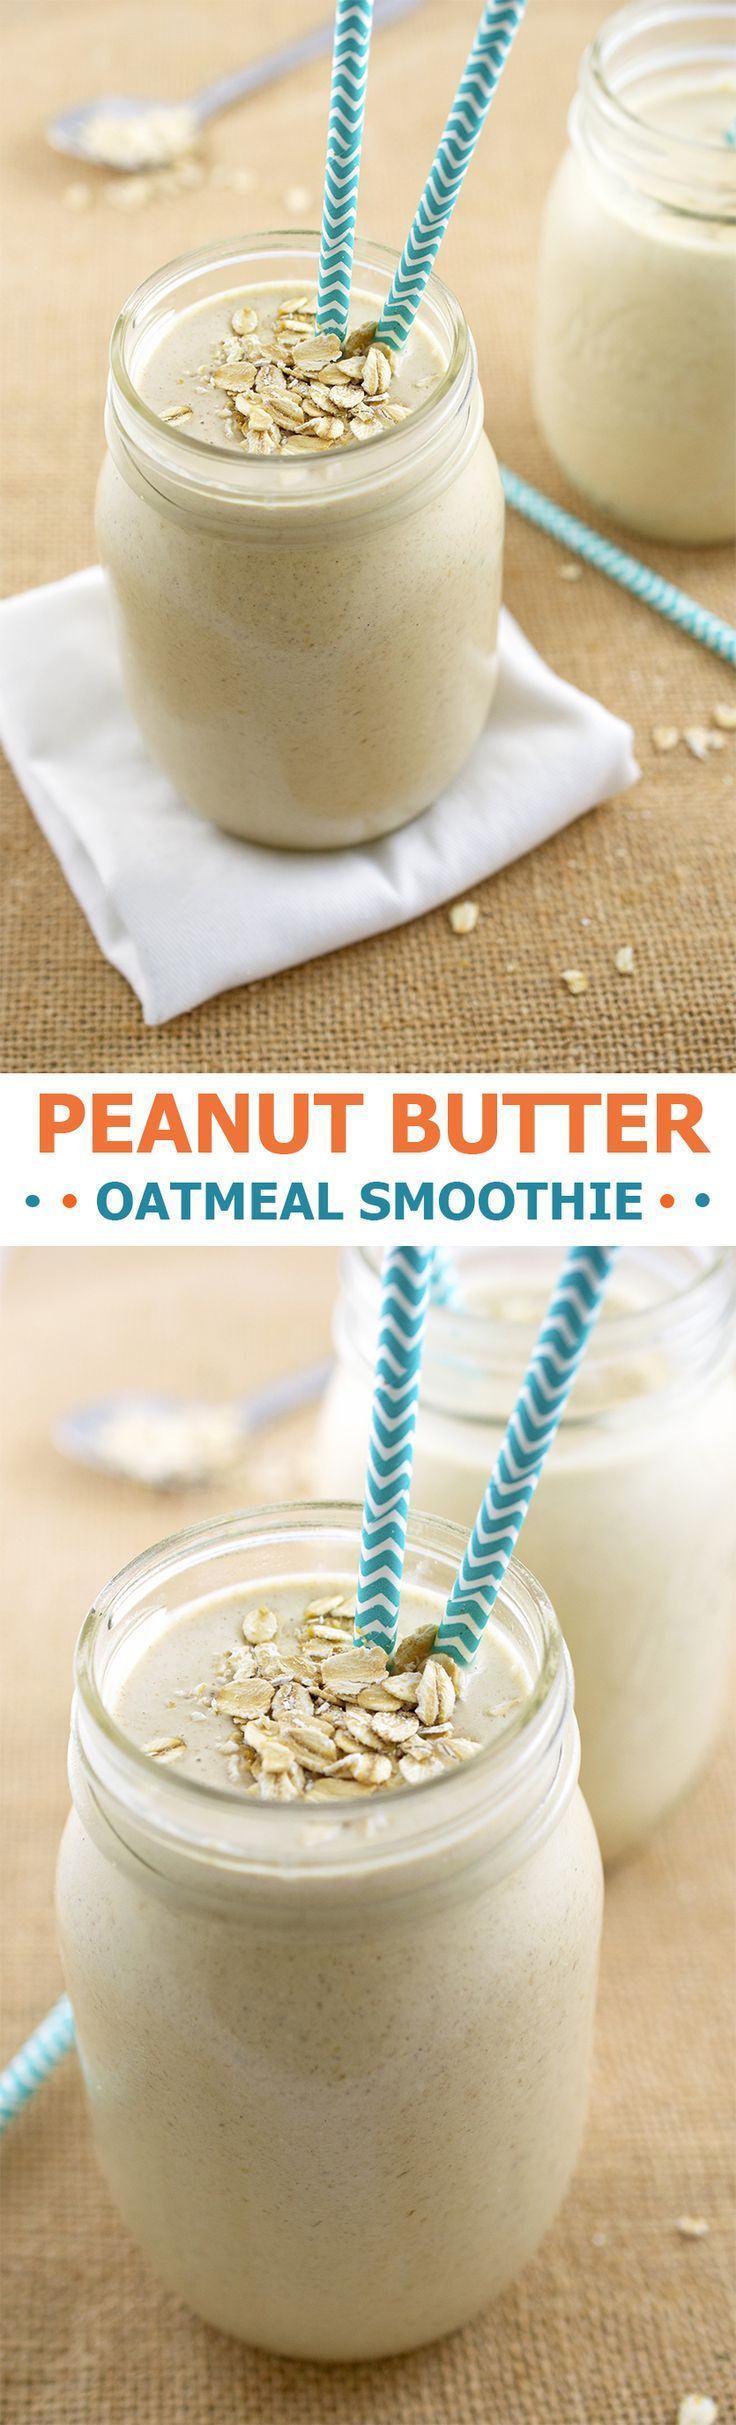 Thick and creamy Peanut Butter Oatmeal Smoothie loaded with creamy peanut butter, old fashioned oats, bananas and vanilla soy milk. (Butter Substitute Desserts)